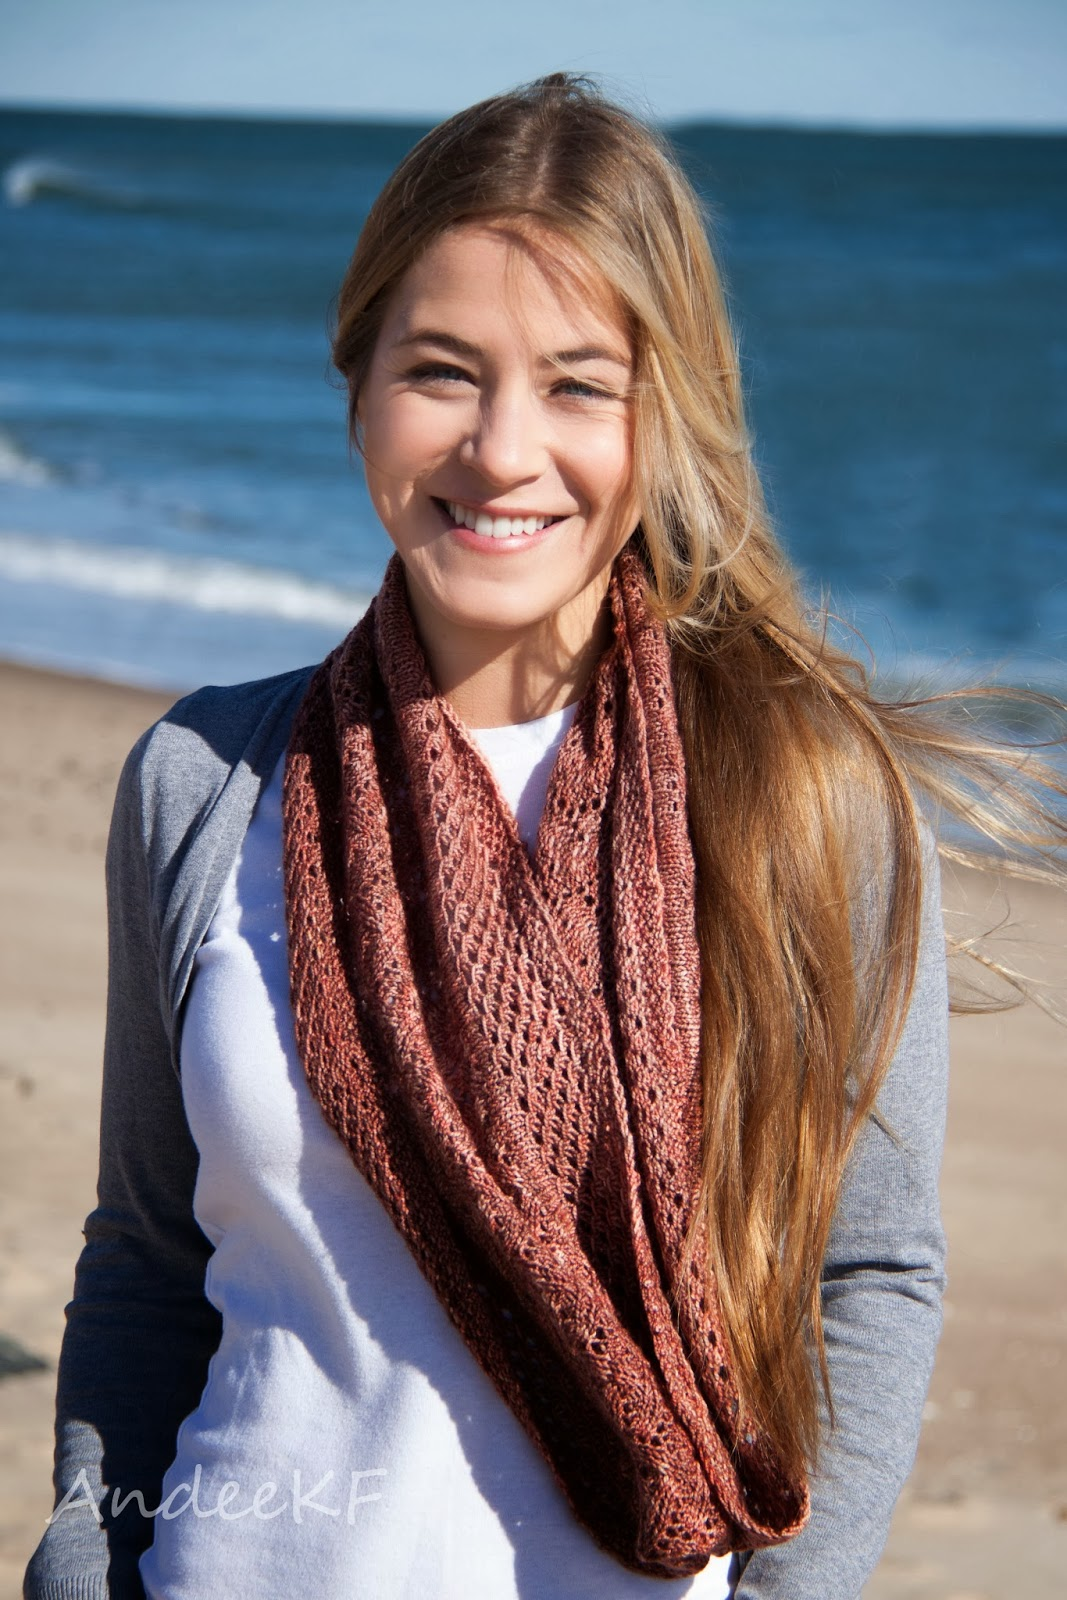 Match the Pictures: The Penny Infinity Scarf